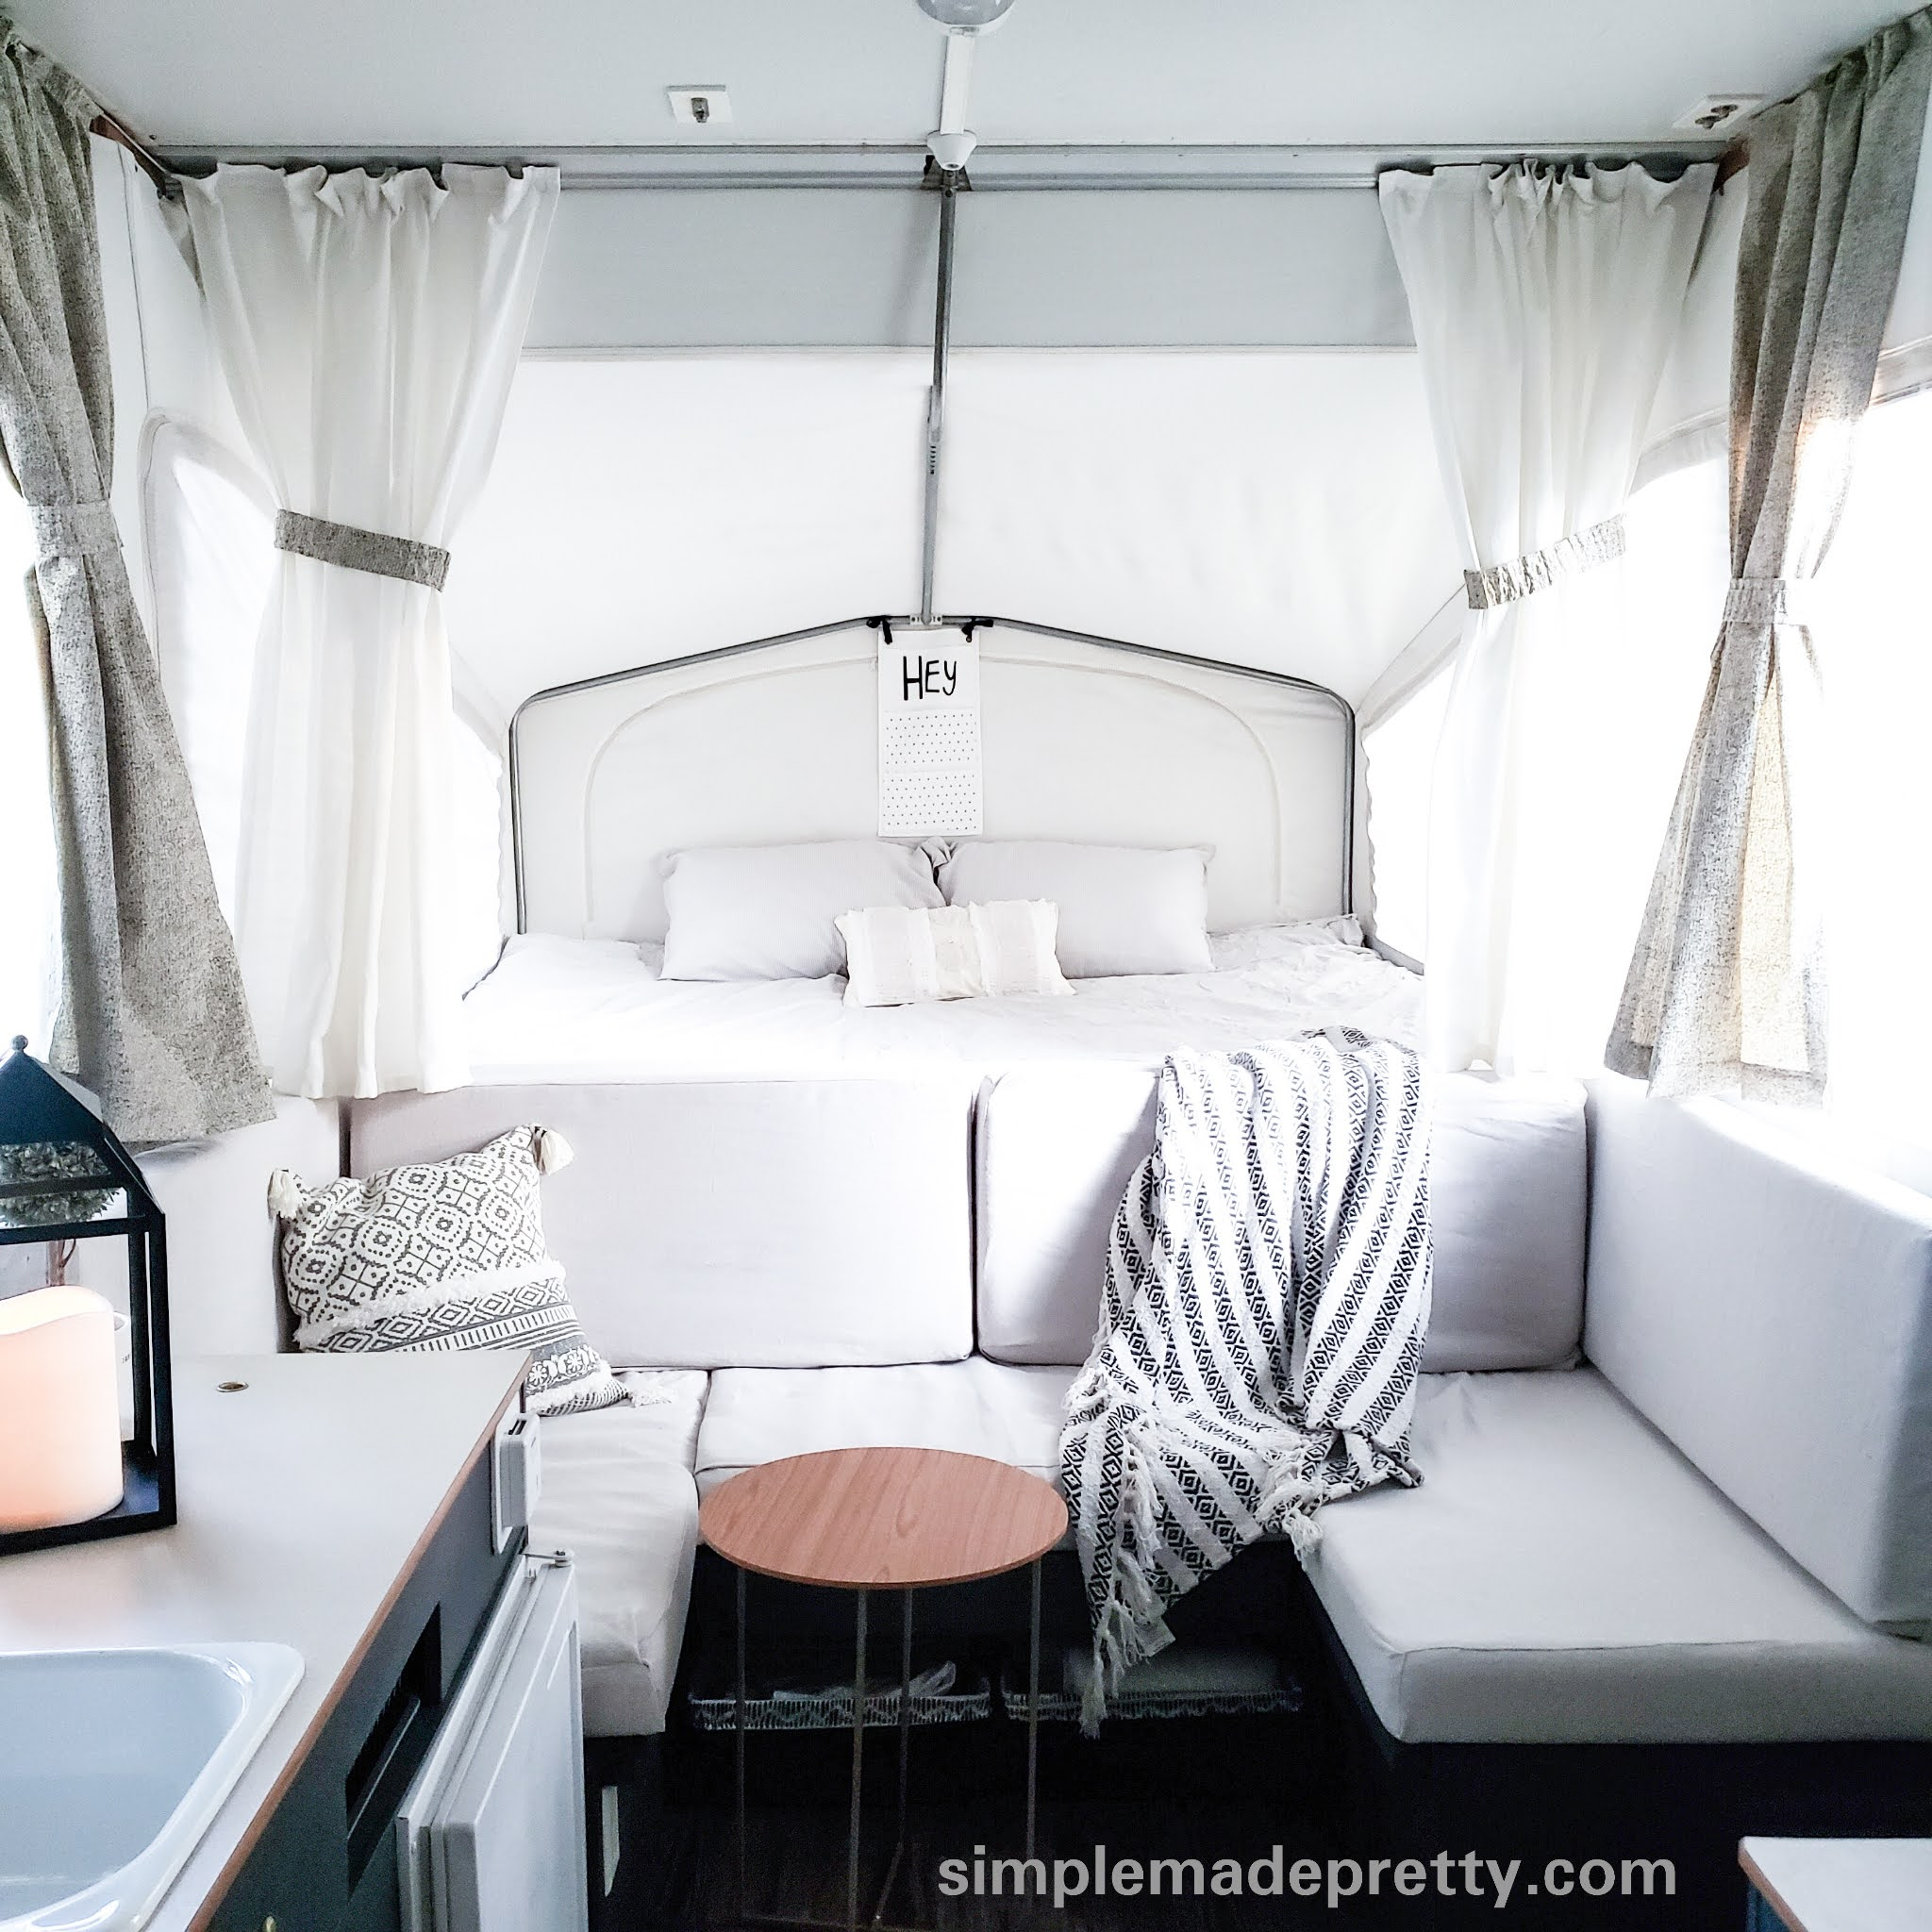 Pop Up Camper Remodel On A Budget Simple Made Pretty